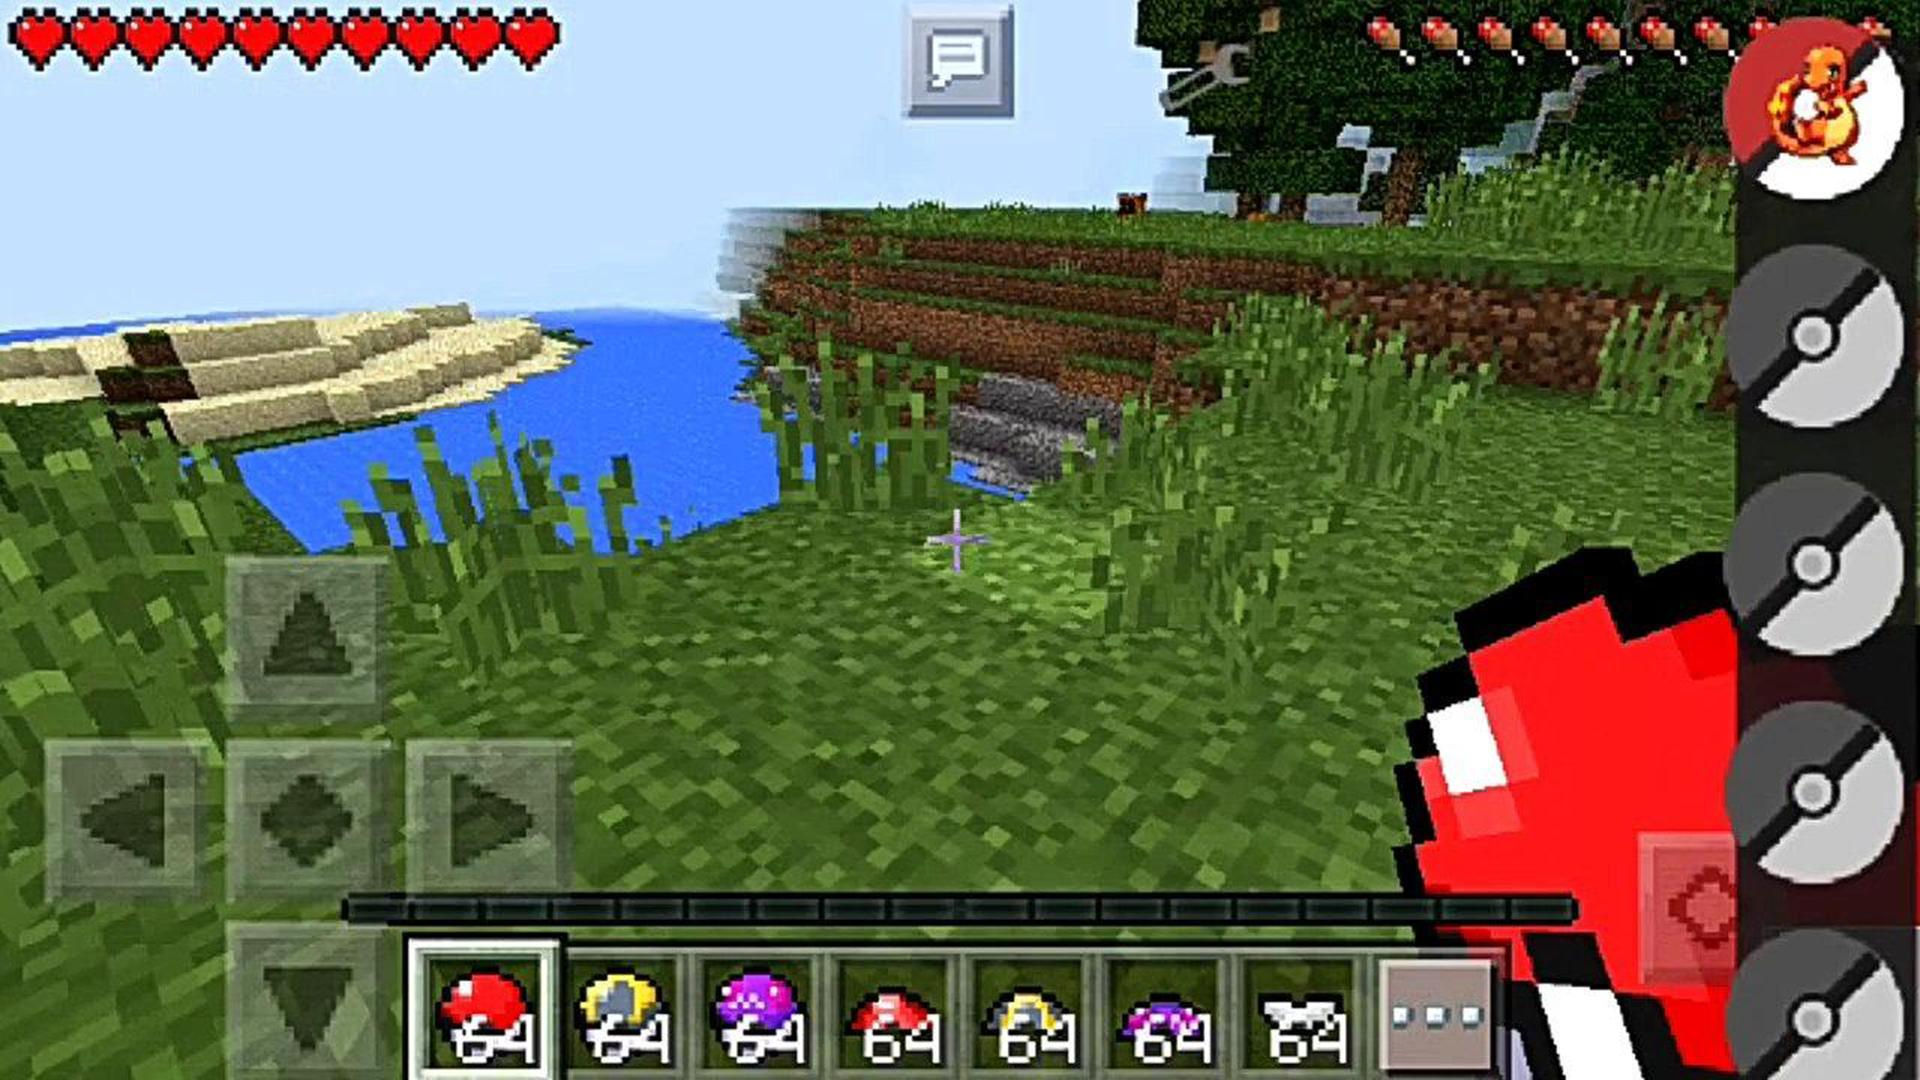 Free Mixcraft Pixelmon Mod for Minecraft PE for Android